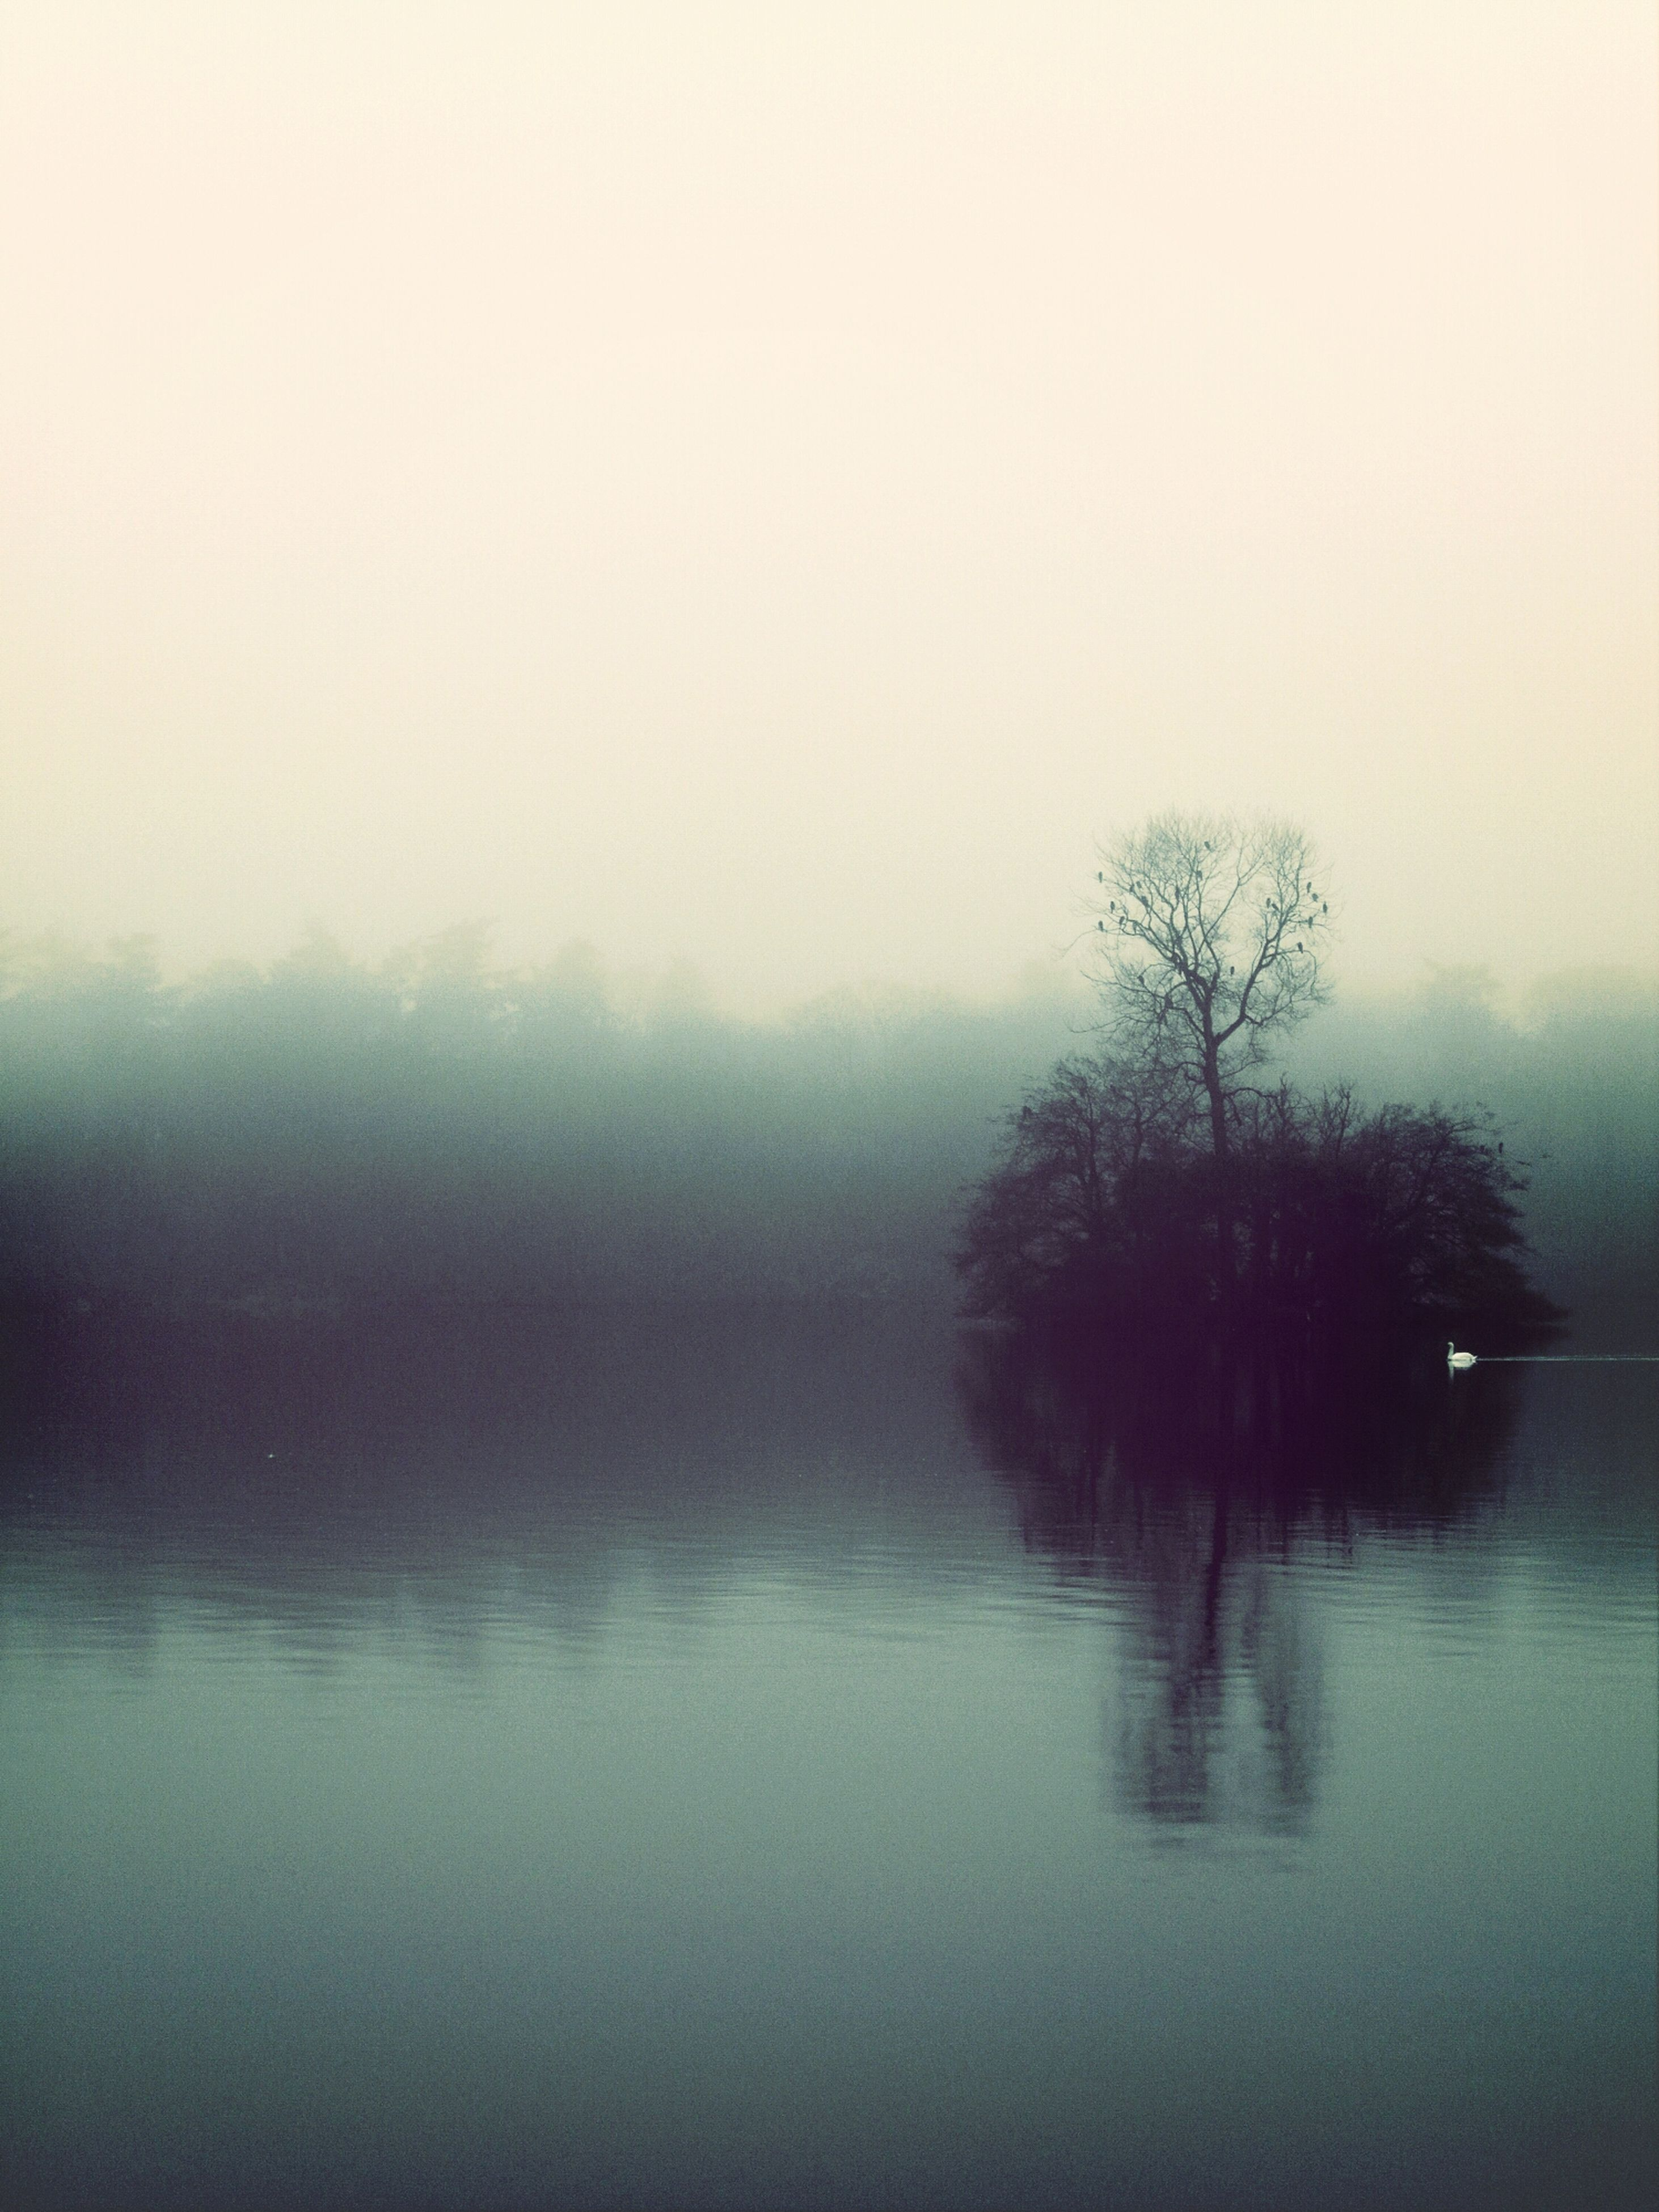 fog, foggy, water, tranquility, tranquil scene, tree, lake, weather, scenics, waterfront, beauty in nature, nature, copy space, mist, reflection, sky, bare tree, idyllic, non-urban scene